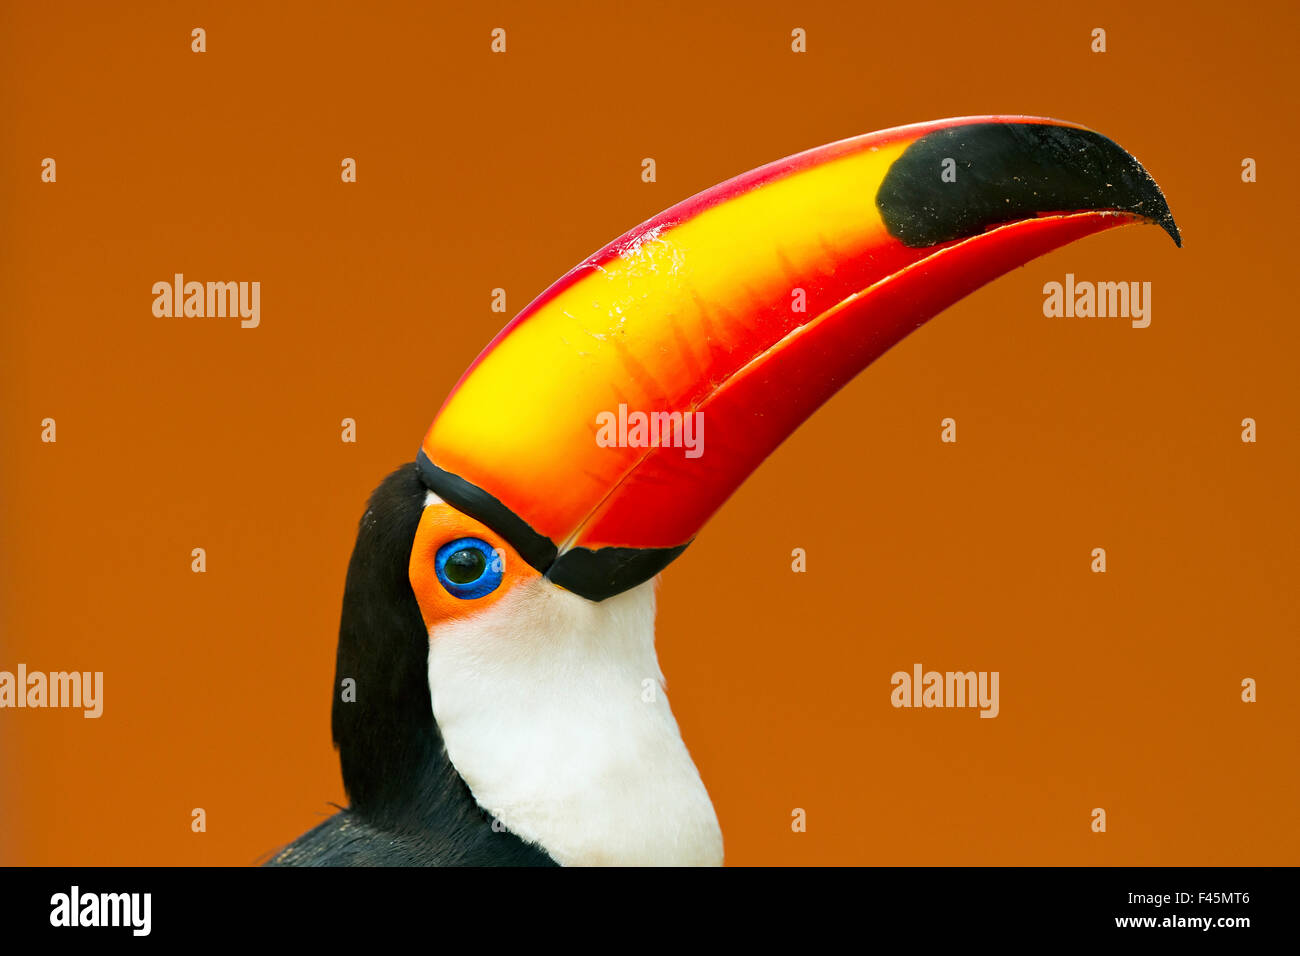 Toco Toucan (Ramphastos toco) head and beak profile portrait, Brazil. - Stock Image